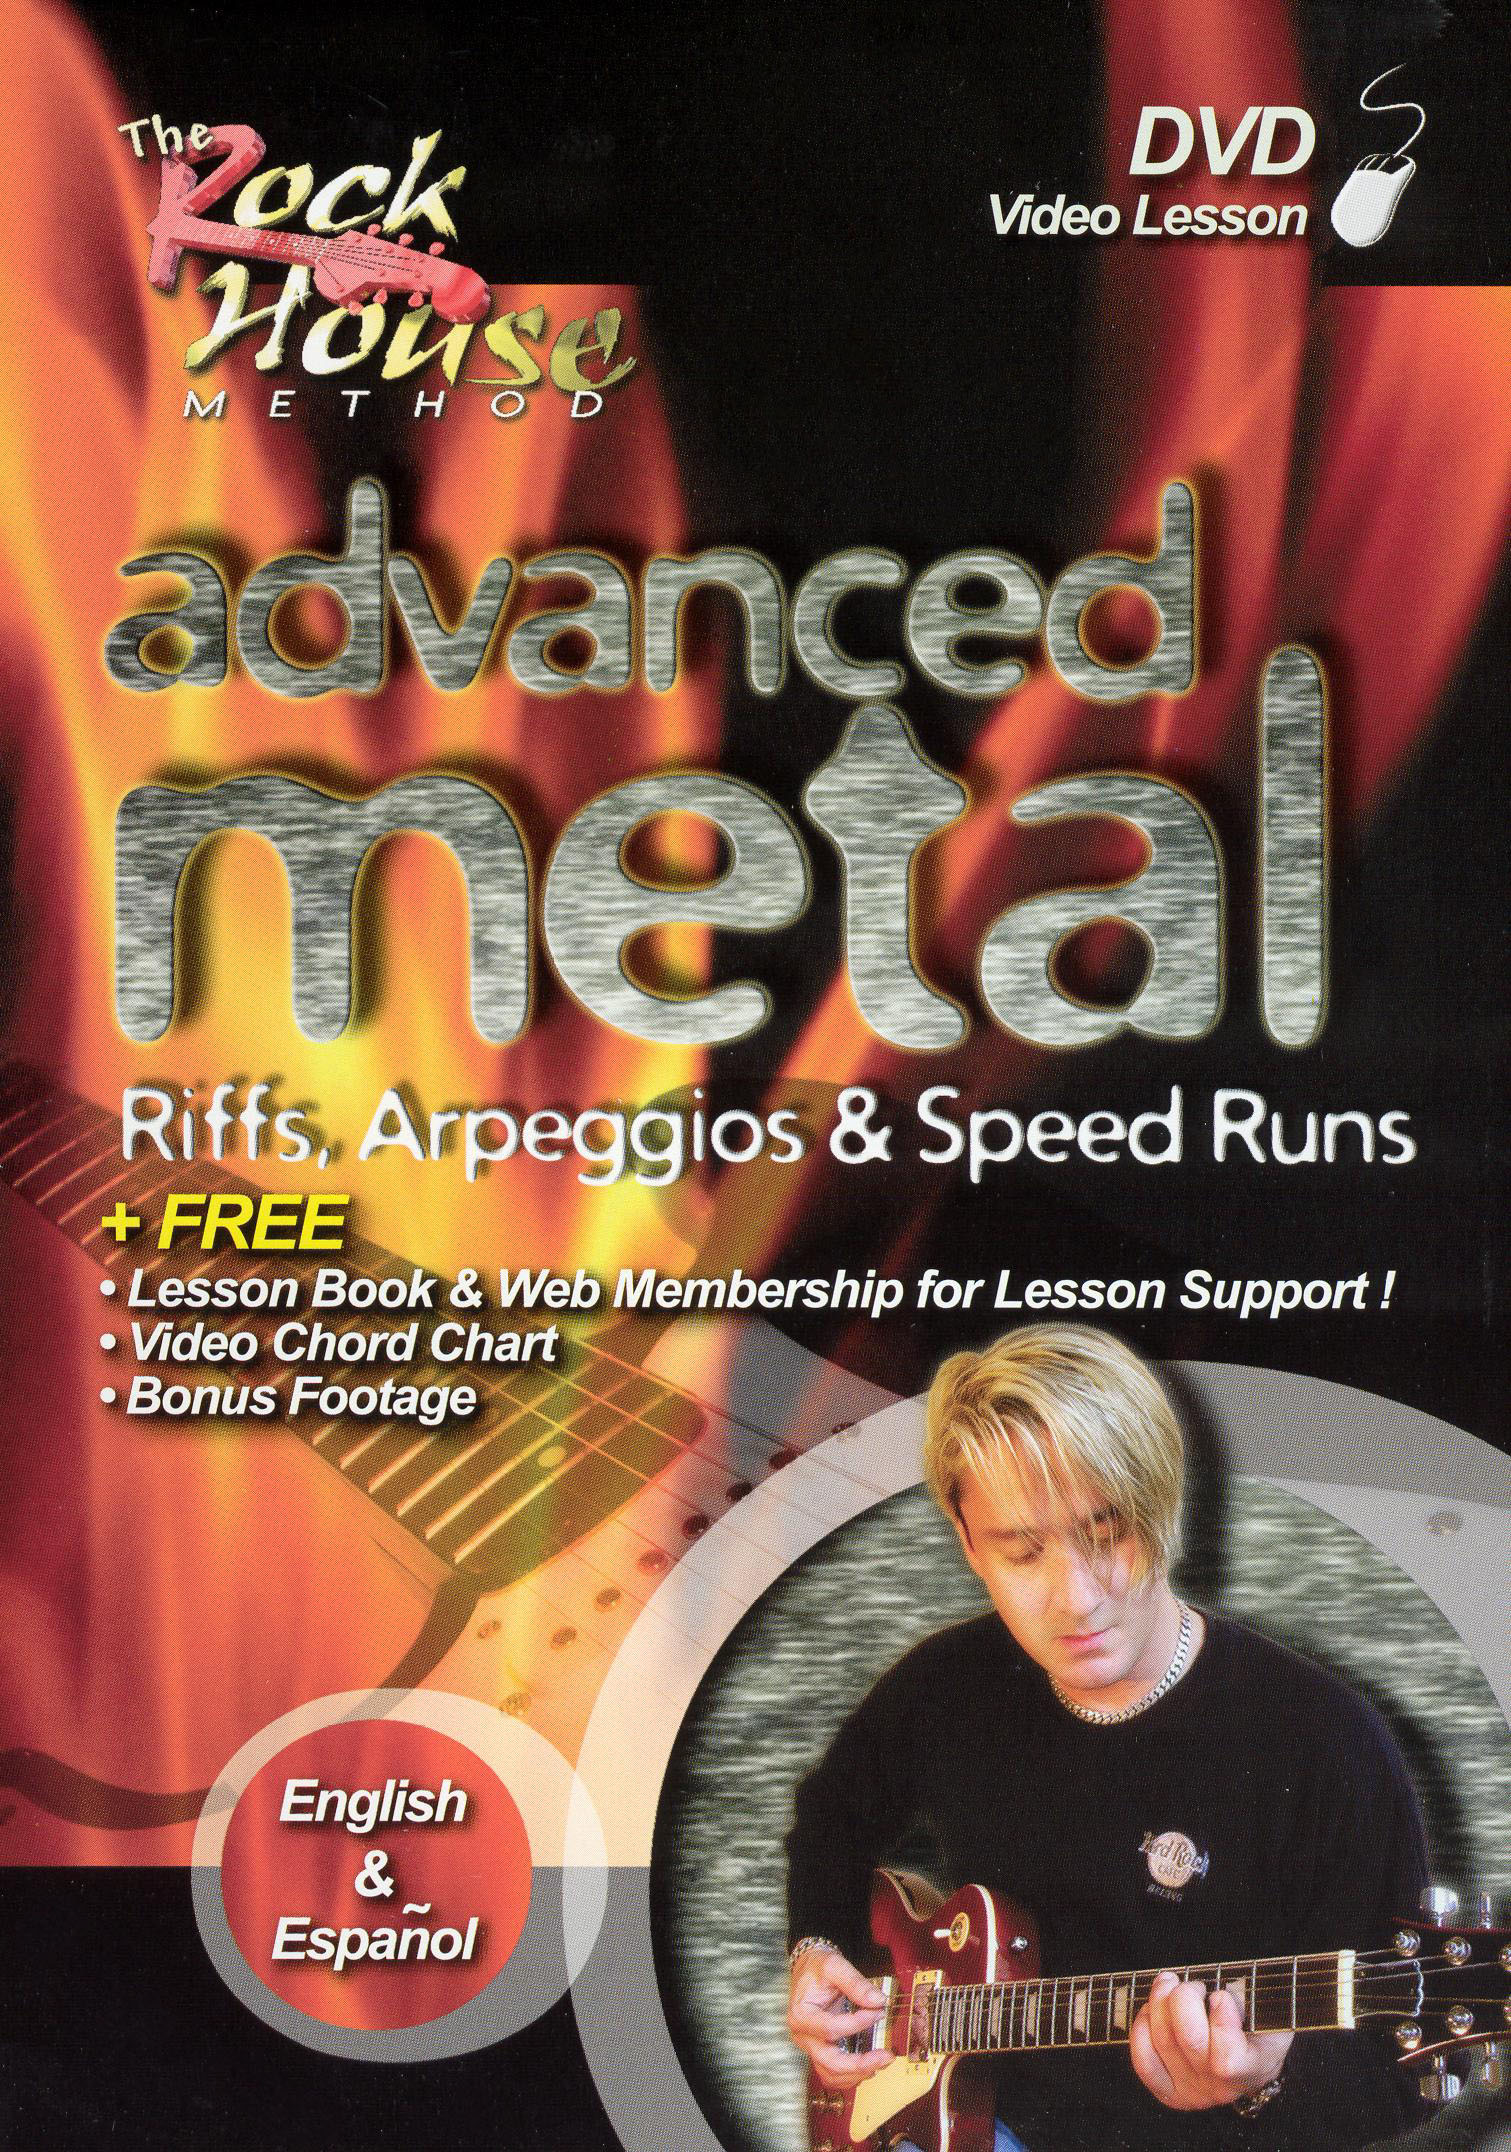 The Rock House Method: Advanced Metal - Riffs, Arpeggios & Speed Runs